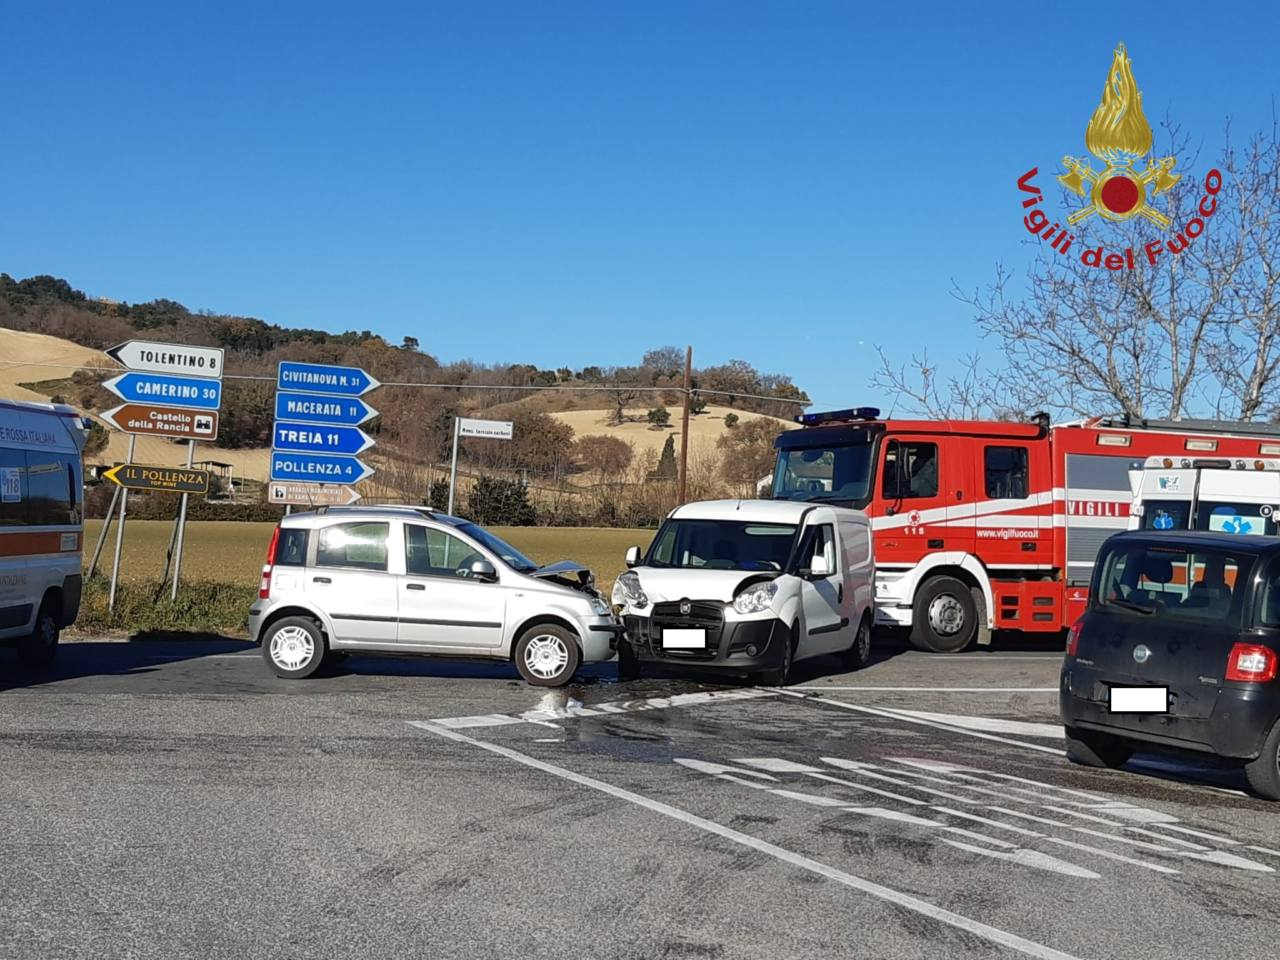 Incidente stradale a Pollenza